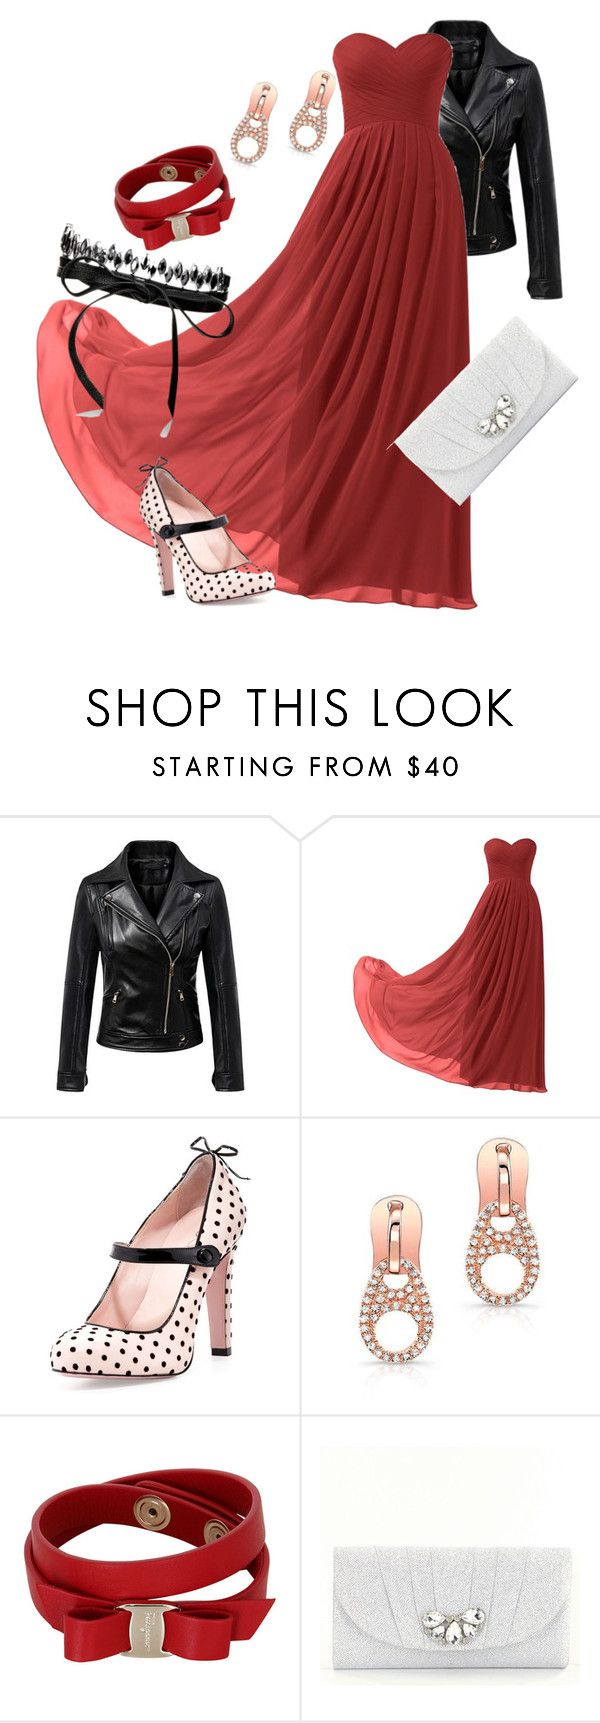 """""""District 8: Textile"""" by madalynkw on Polyvore featuring Chicnova Fashion, Remedios, RED Valentino, Anne Sisteron, Salvatore Ferragamo, Kate Landry and Fallon"""